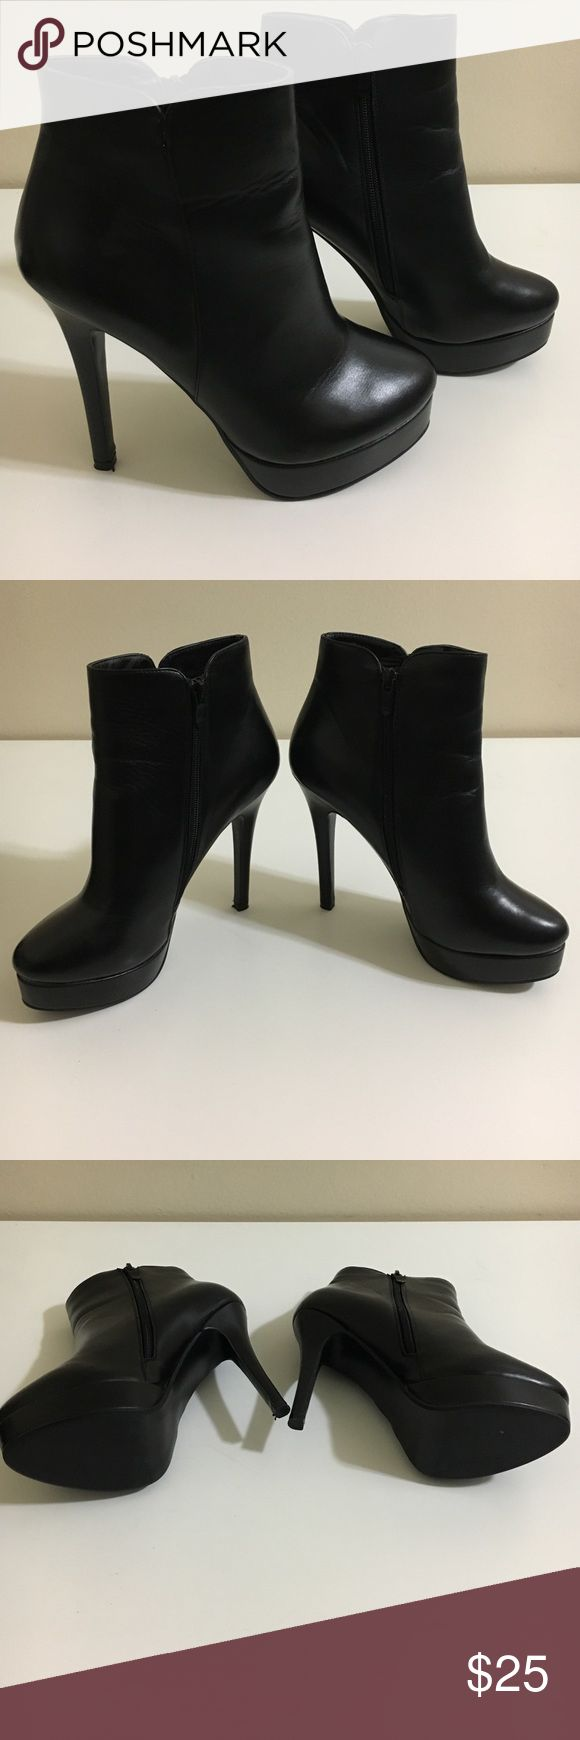 Charles by Charles David Platform Booties 7 1/2B Charles by Charles David Black Platform Booties 7 1/2B. Used only a few times. Zipper is a bit hard to zip up/down but works well. Charles by Charles David Shoes Ankle Boots & Booties